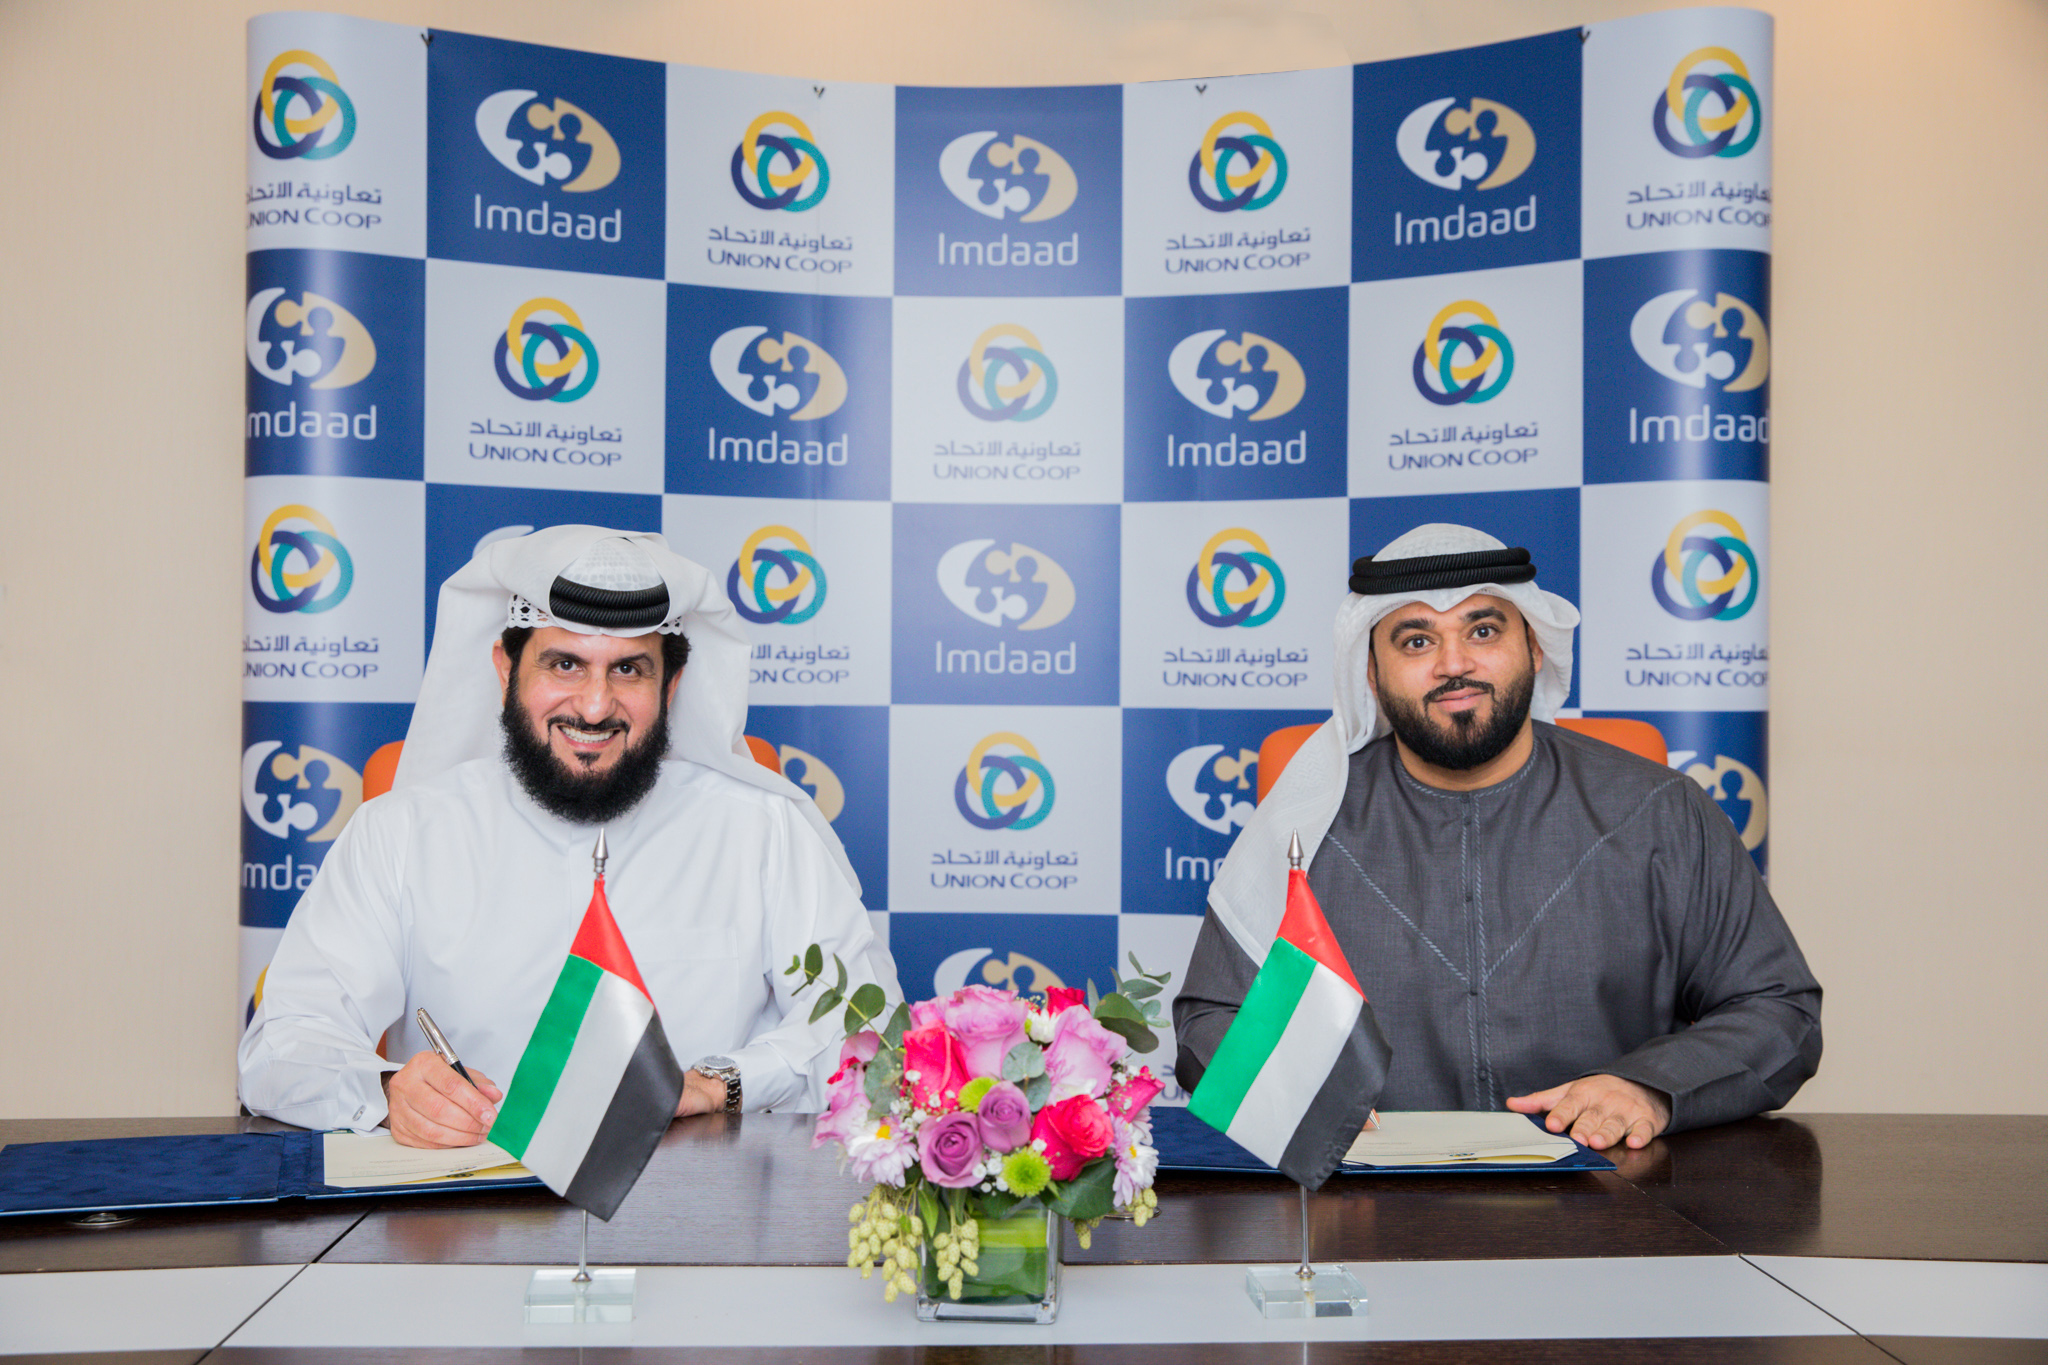 Imdaad Secures Contract Renewal for Waste Collection Services across Union Coop Outlets